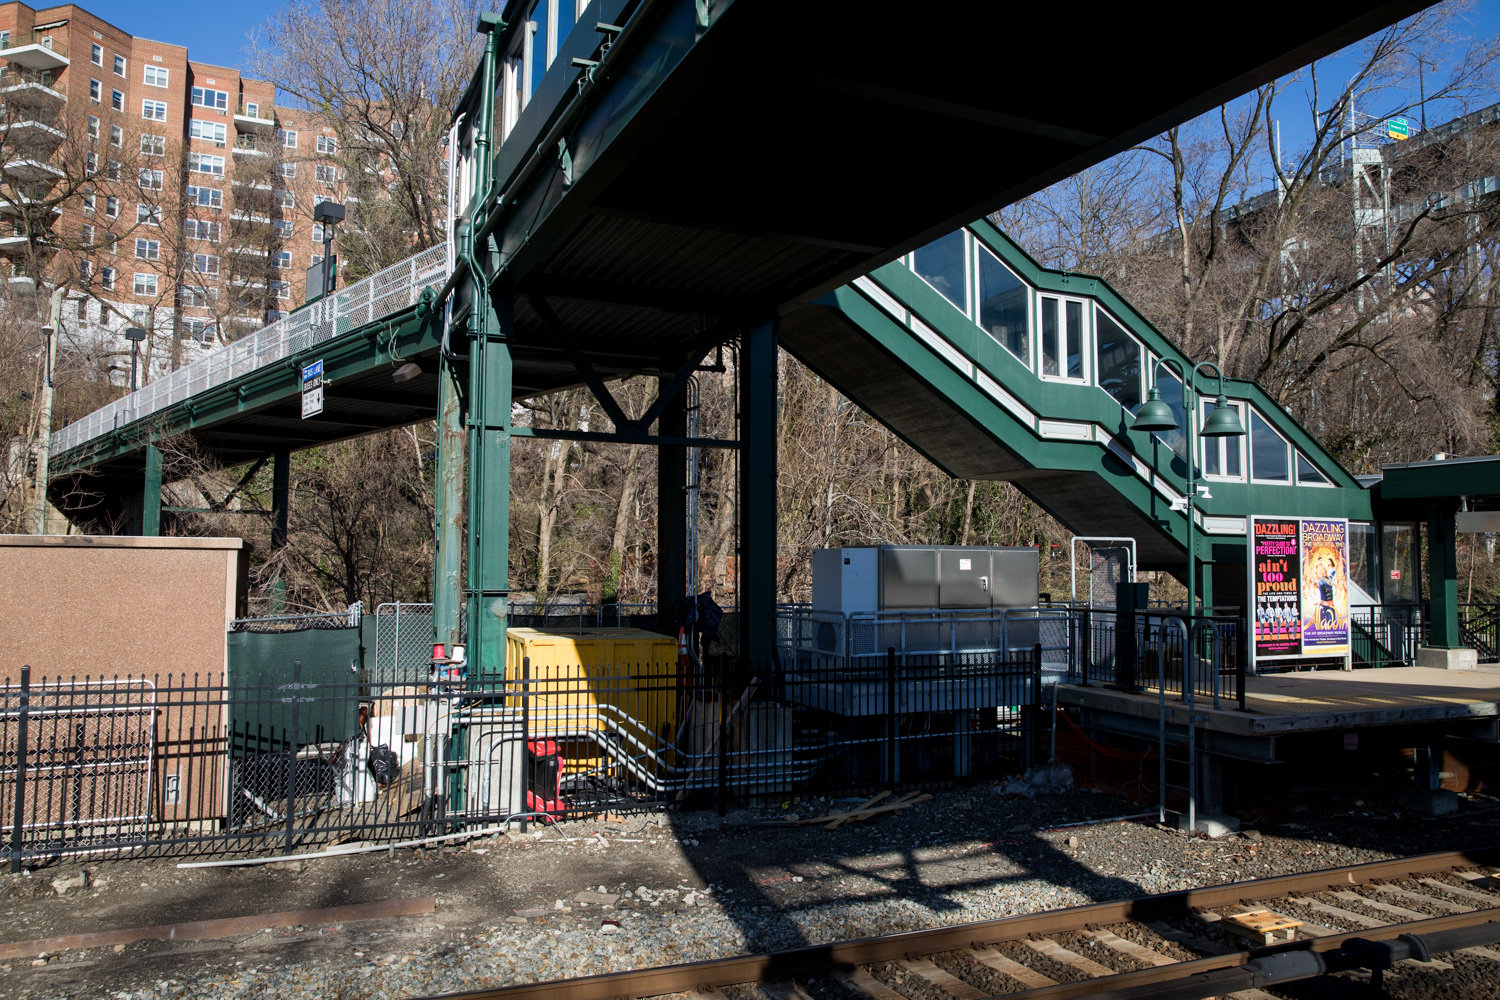 The Spuyten Duyvil Metro-North station is not, like a number of stations, compliant in properly fulfilling the needs of passengers with disabilities. Commuters, especially those with mobility issues, are frustrated with its continued lack of accessibility.